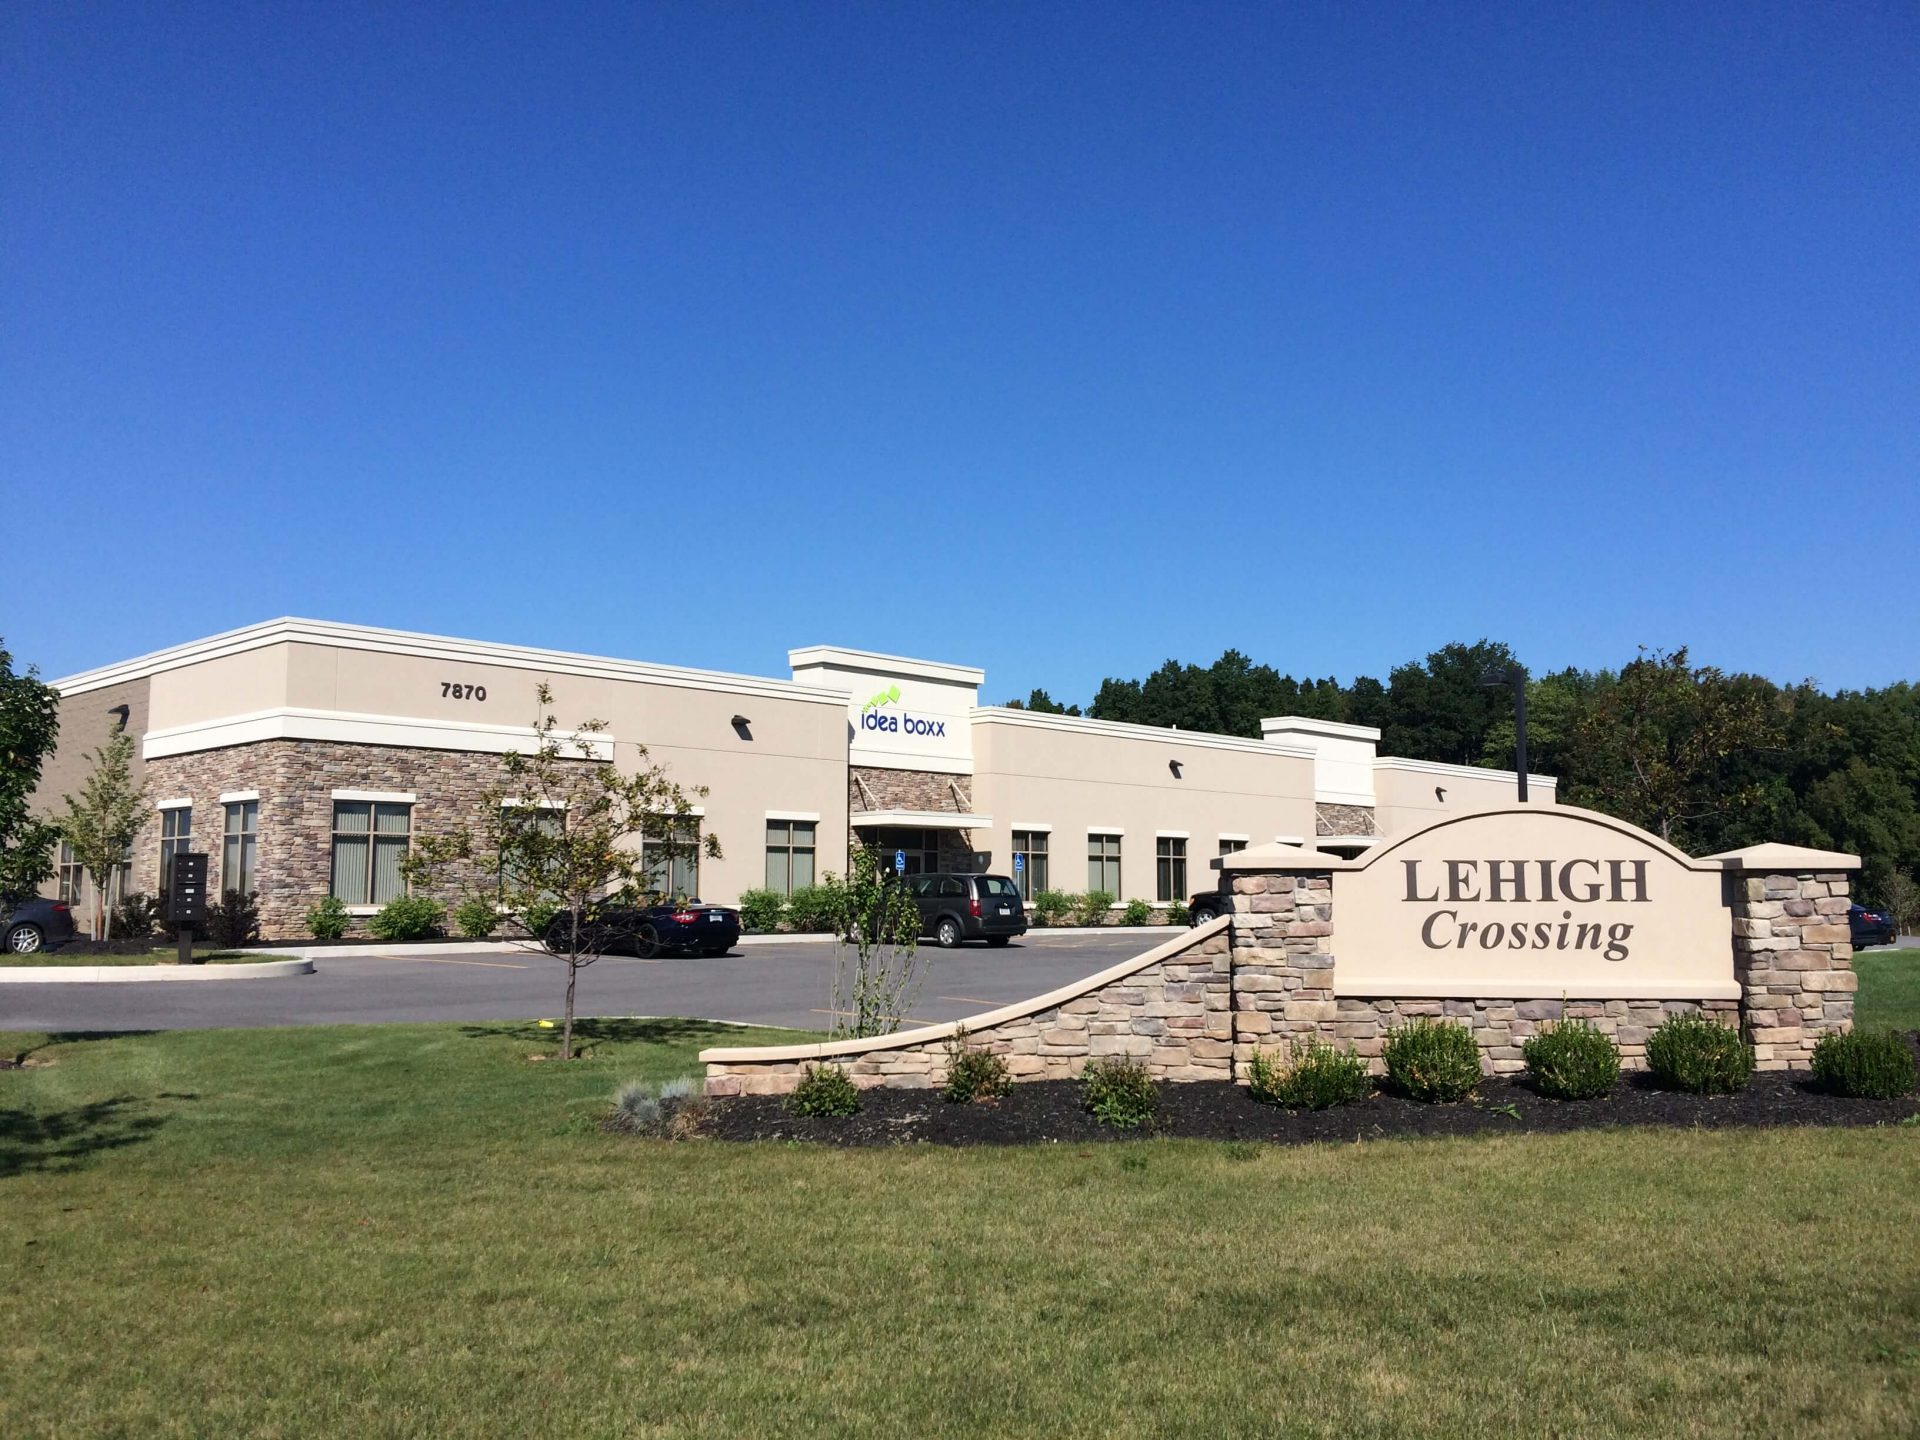 7870 Lehigh Crossing exterior